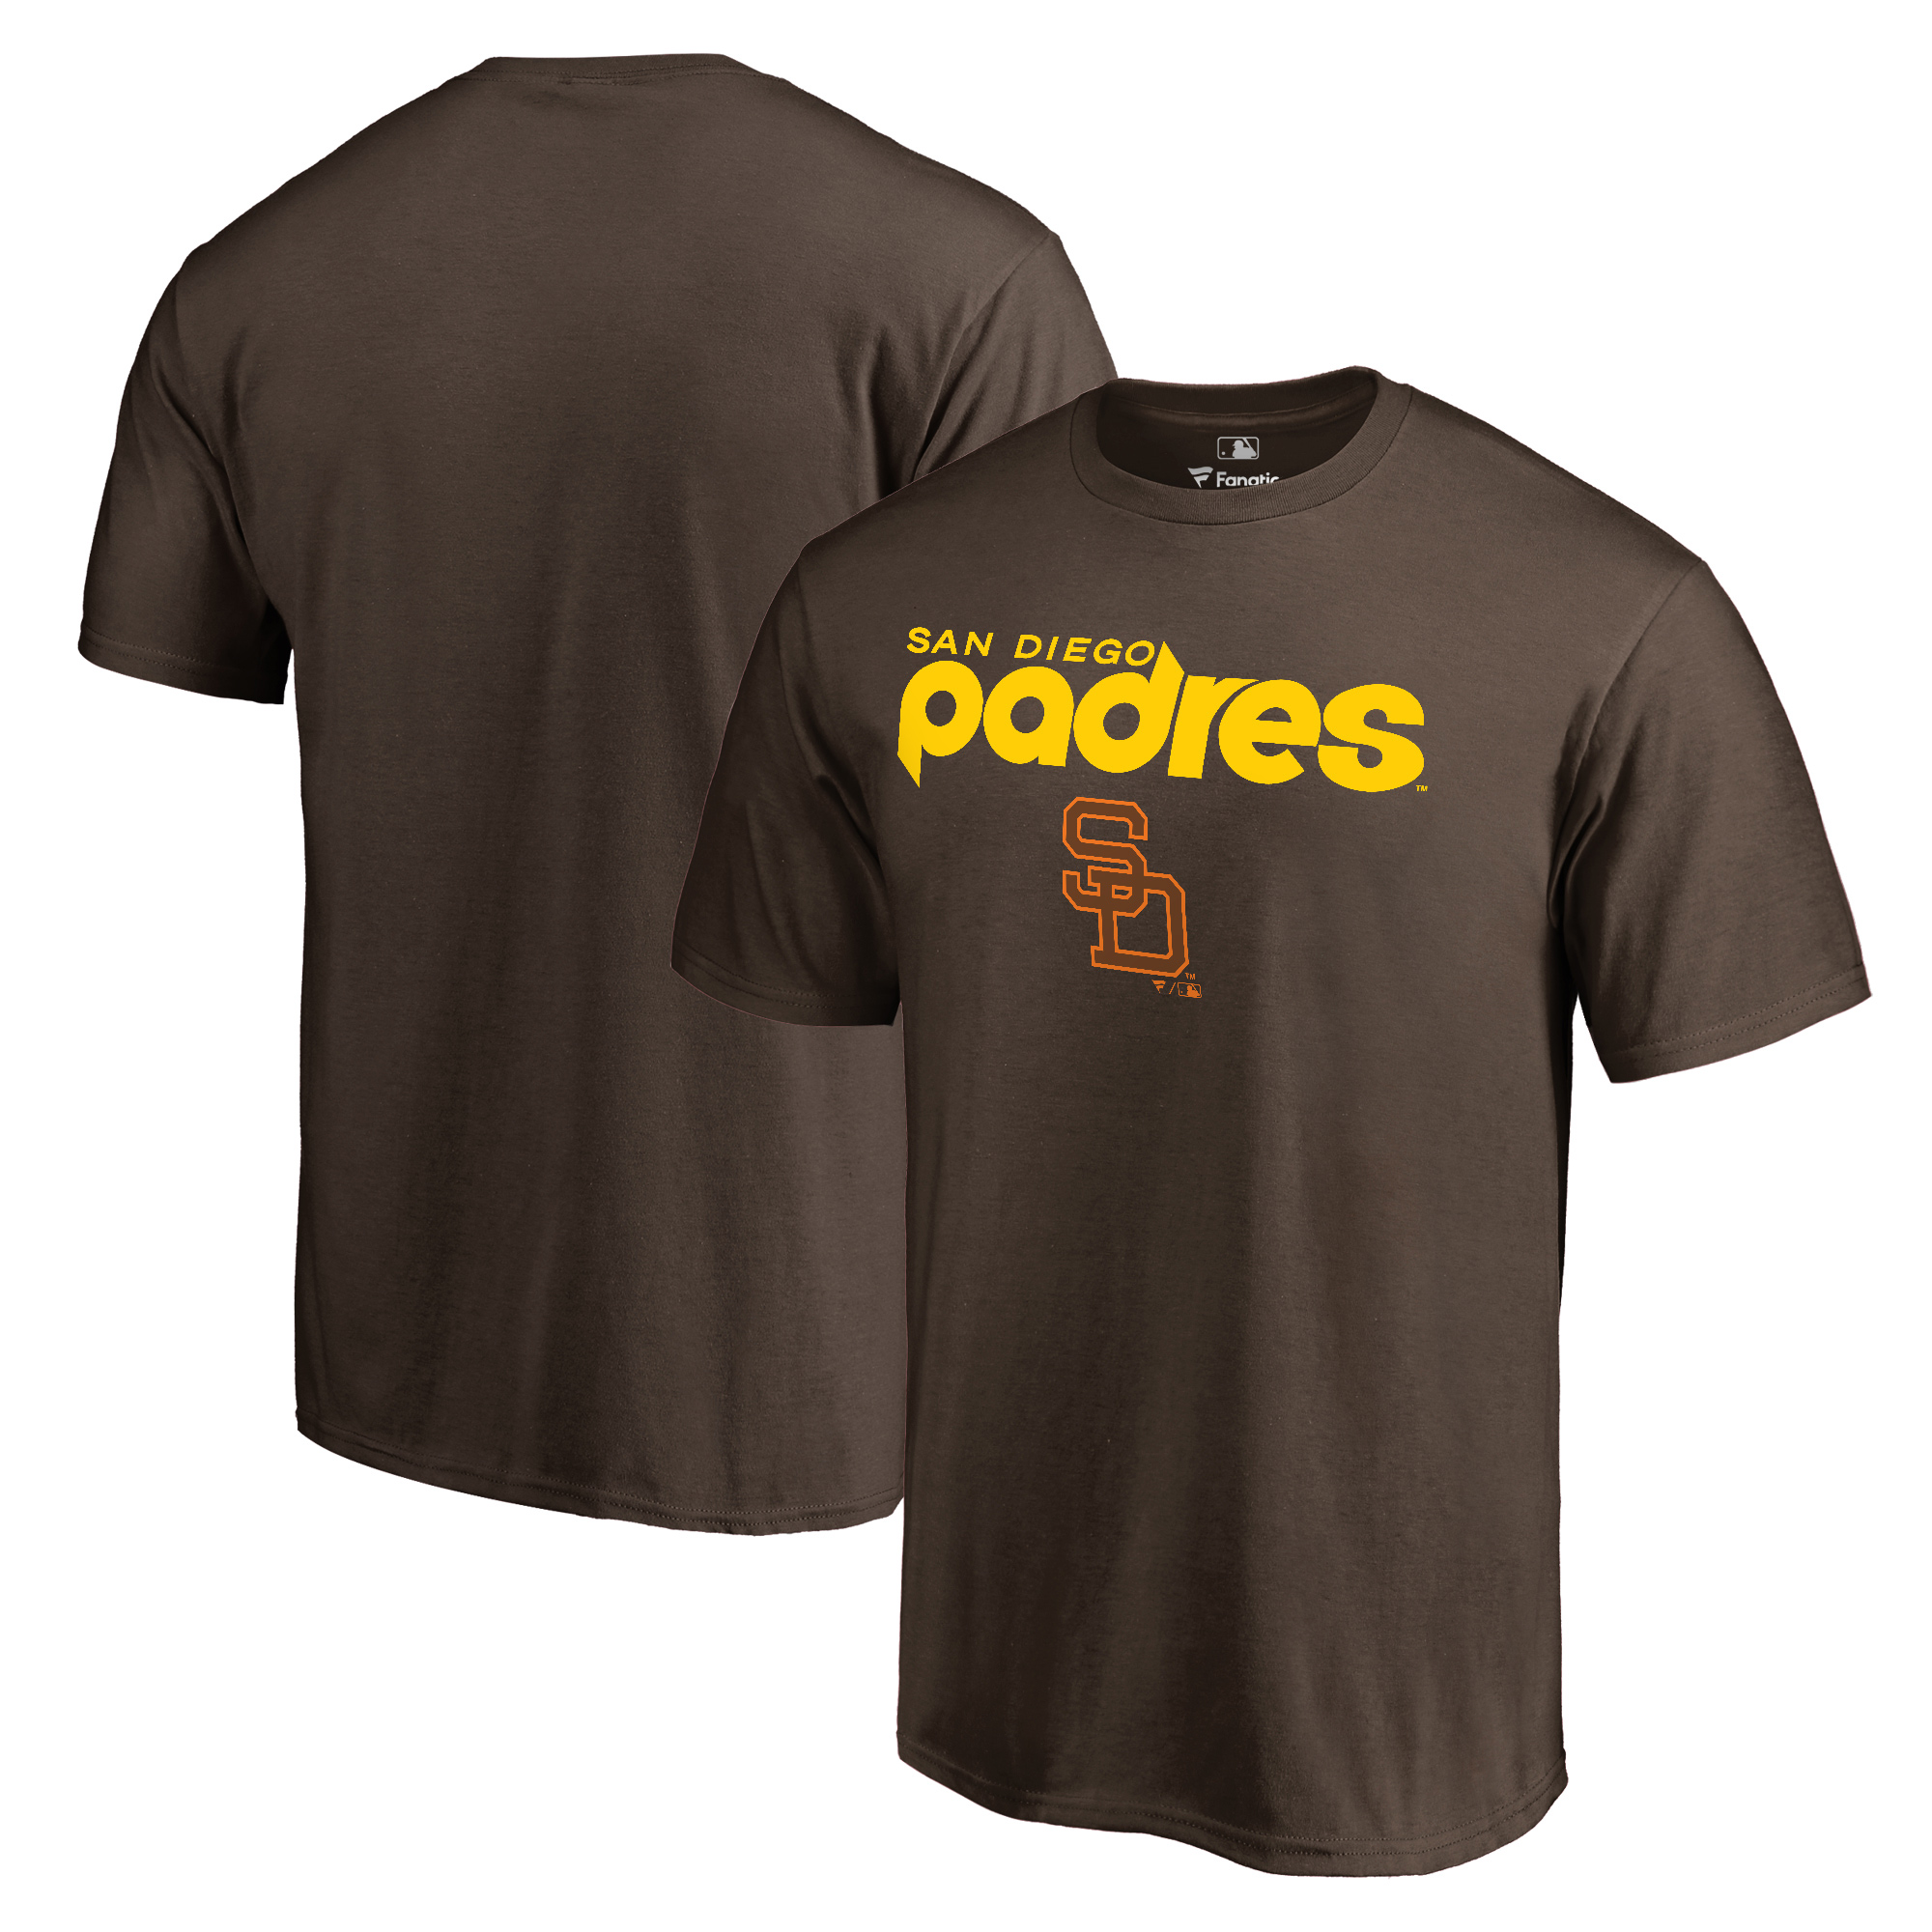 San Diego Padres Fanatics Branded Cooperstown Collection Wahconah T-Shirt - Brown